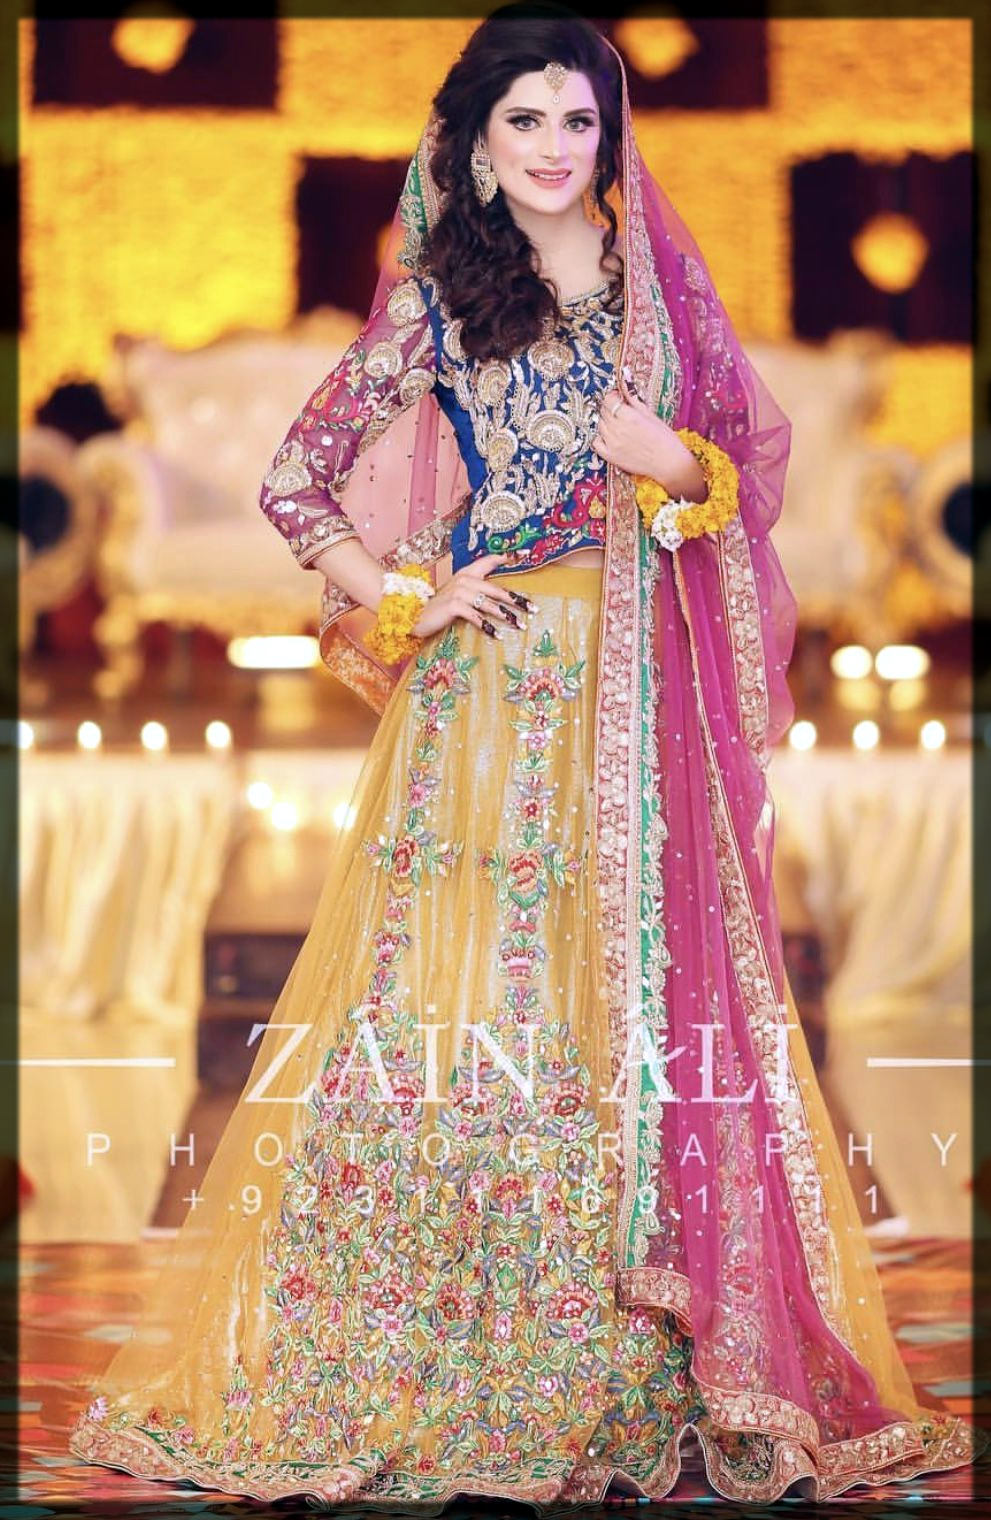 Latest Bridal Mehndi Dresses 2020 In Pakistan For All Mehndi Brides